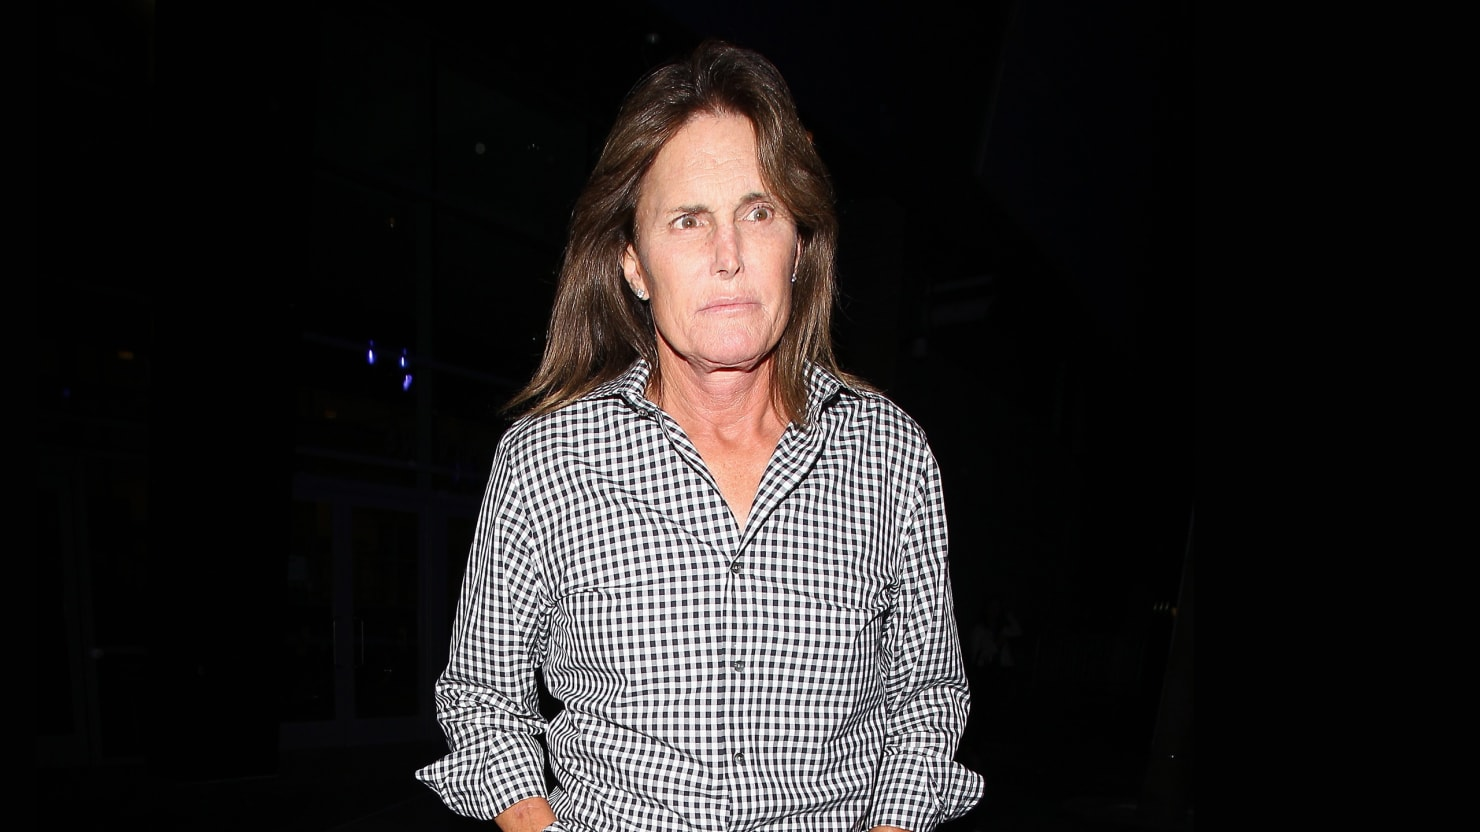 Bruce Jenner S New Face A Renowned Plastic Surgeon